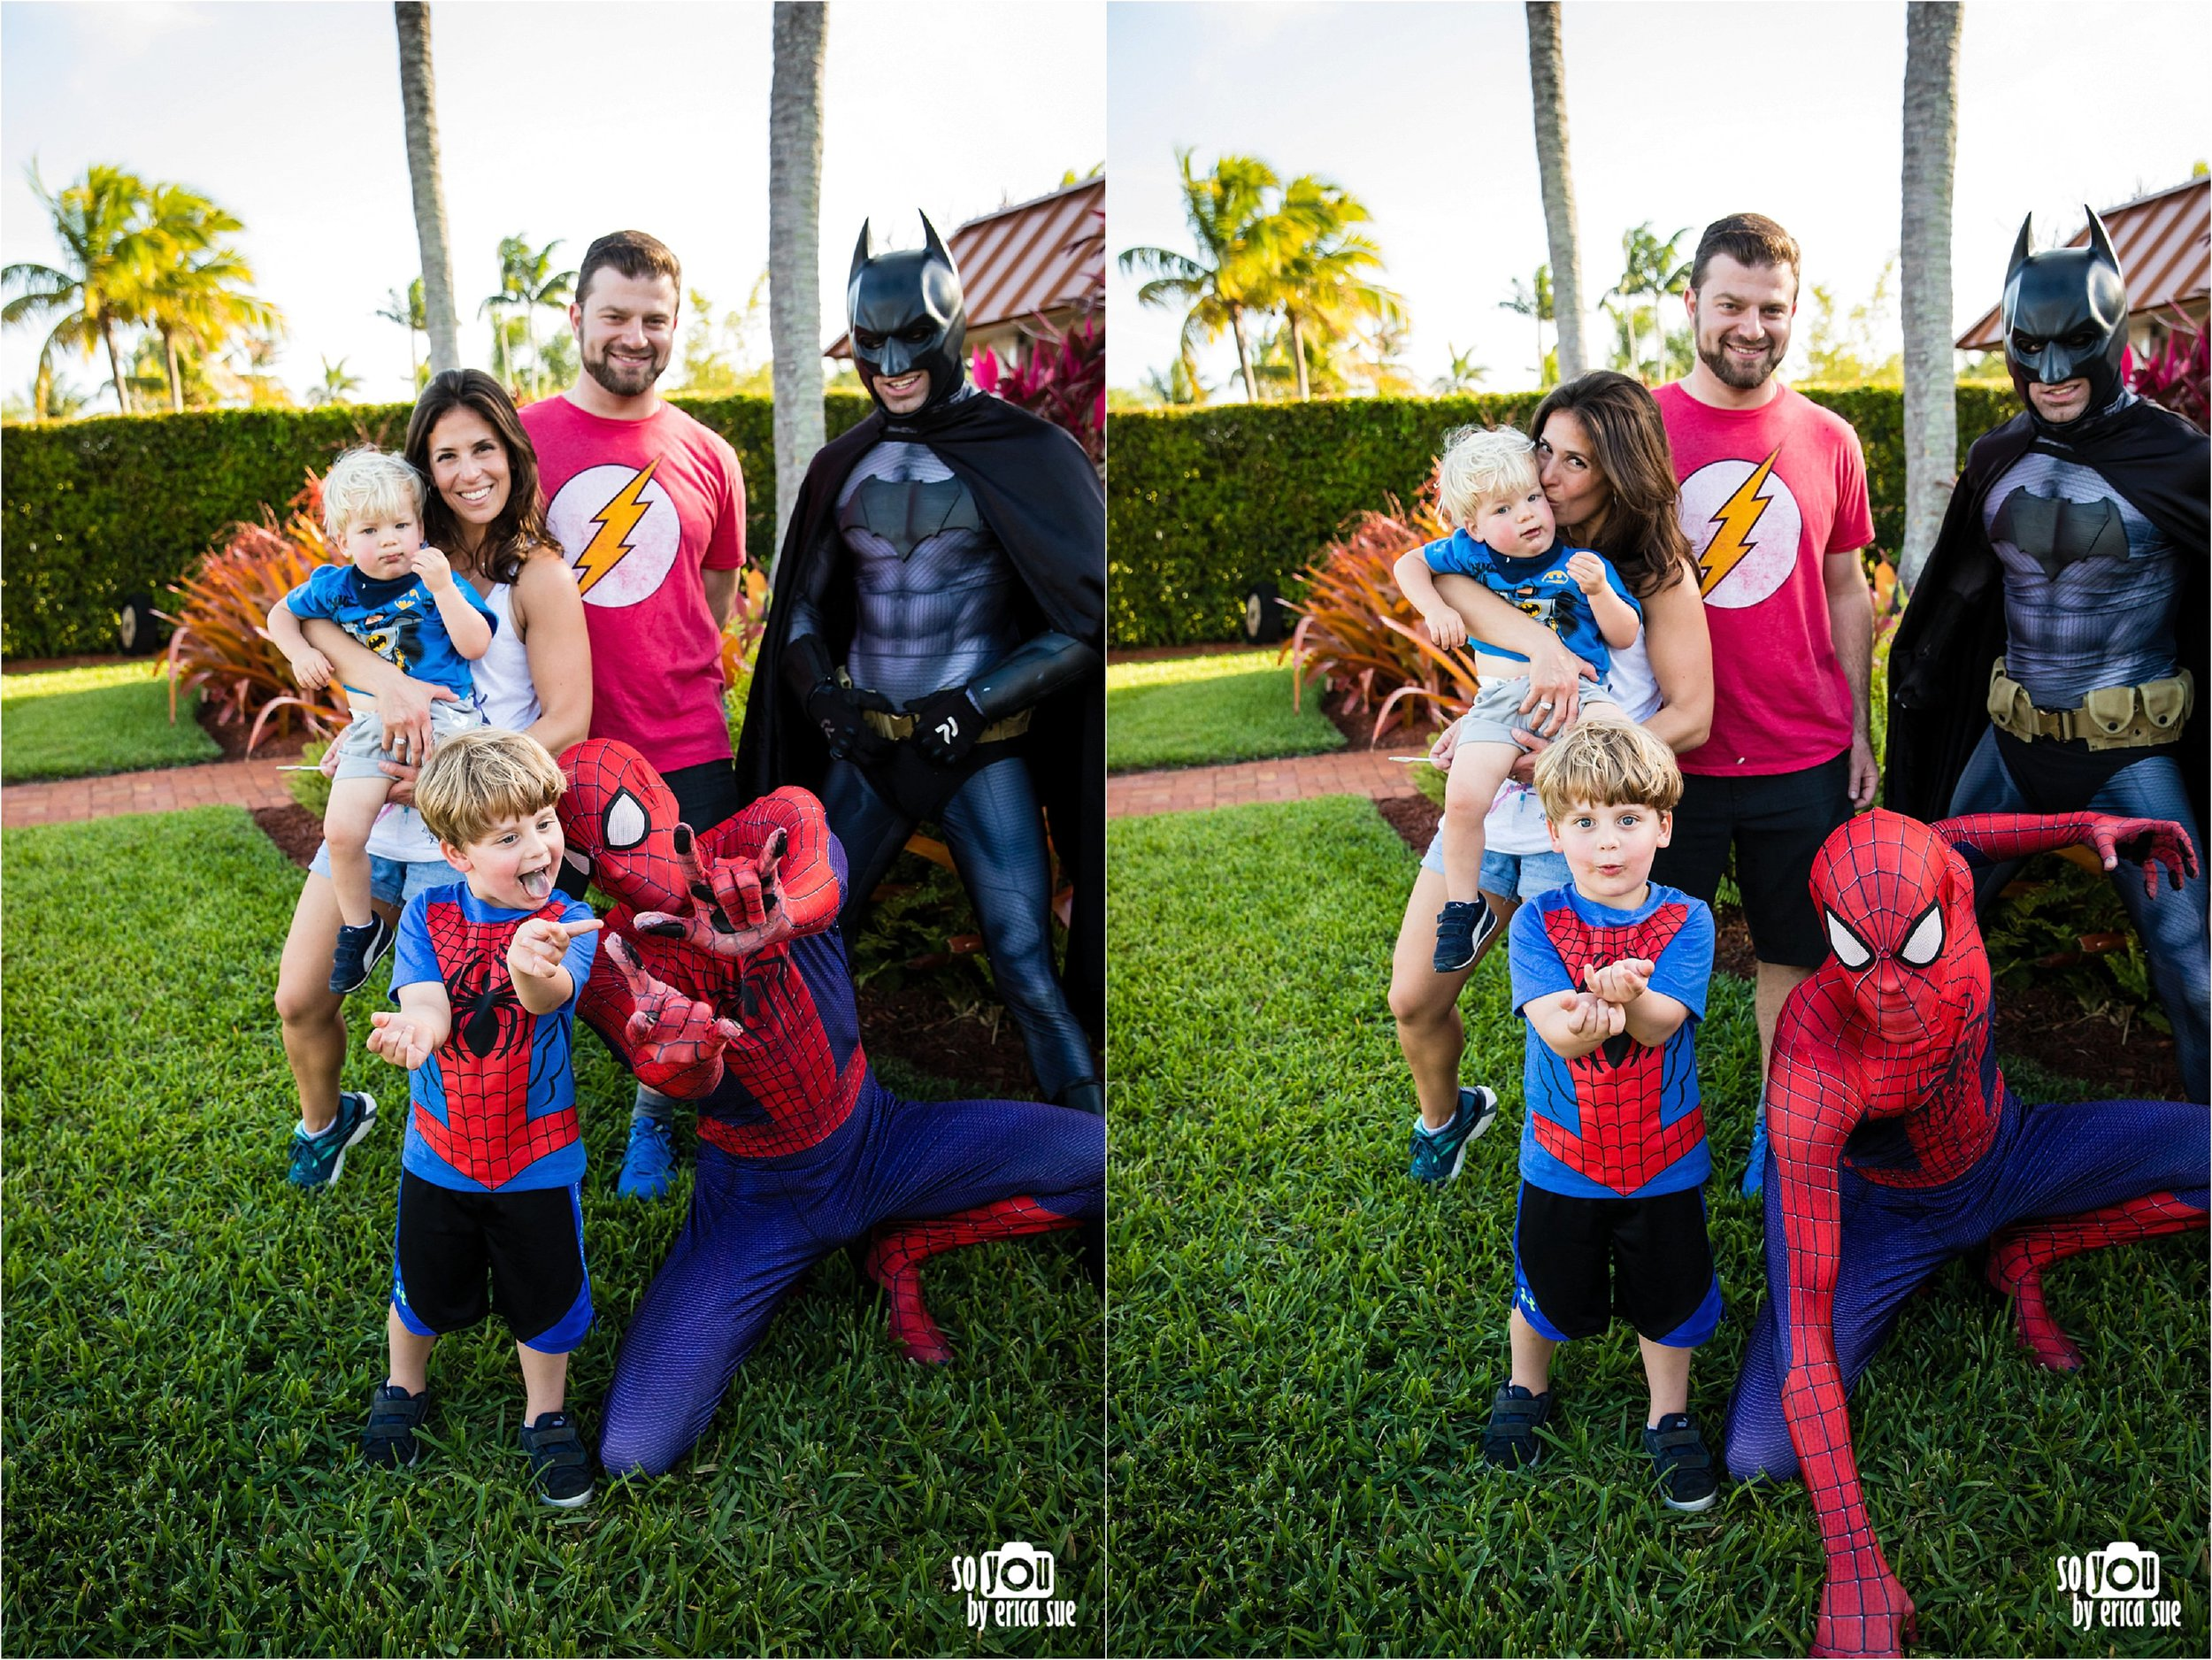 so-you-by-erica-sue-miami-birthday-party-event-photographer-8634 (2).jpg